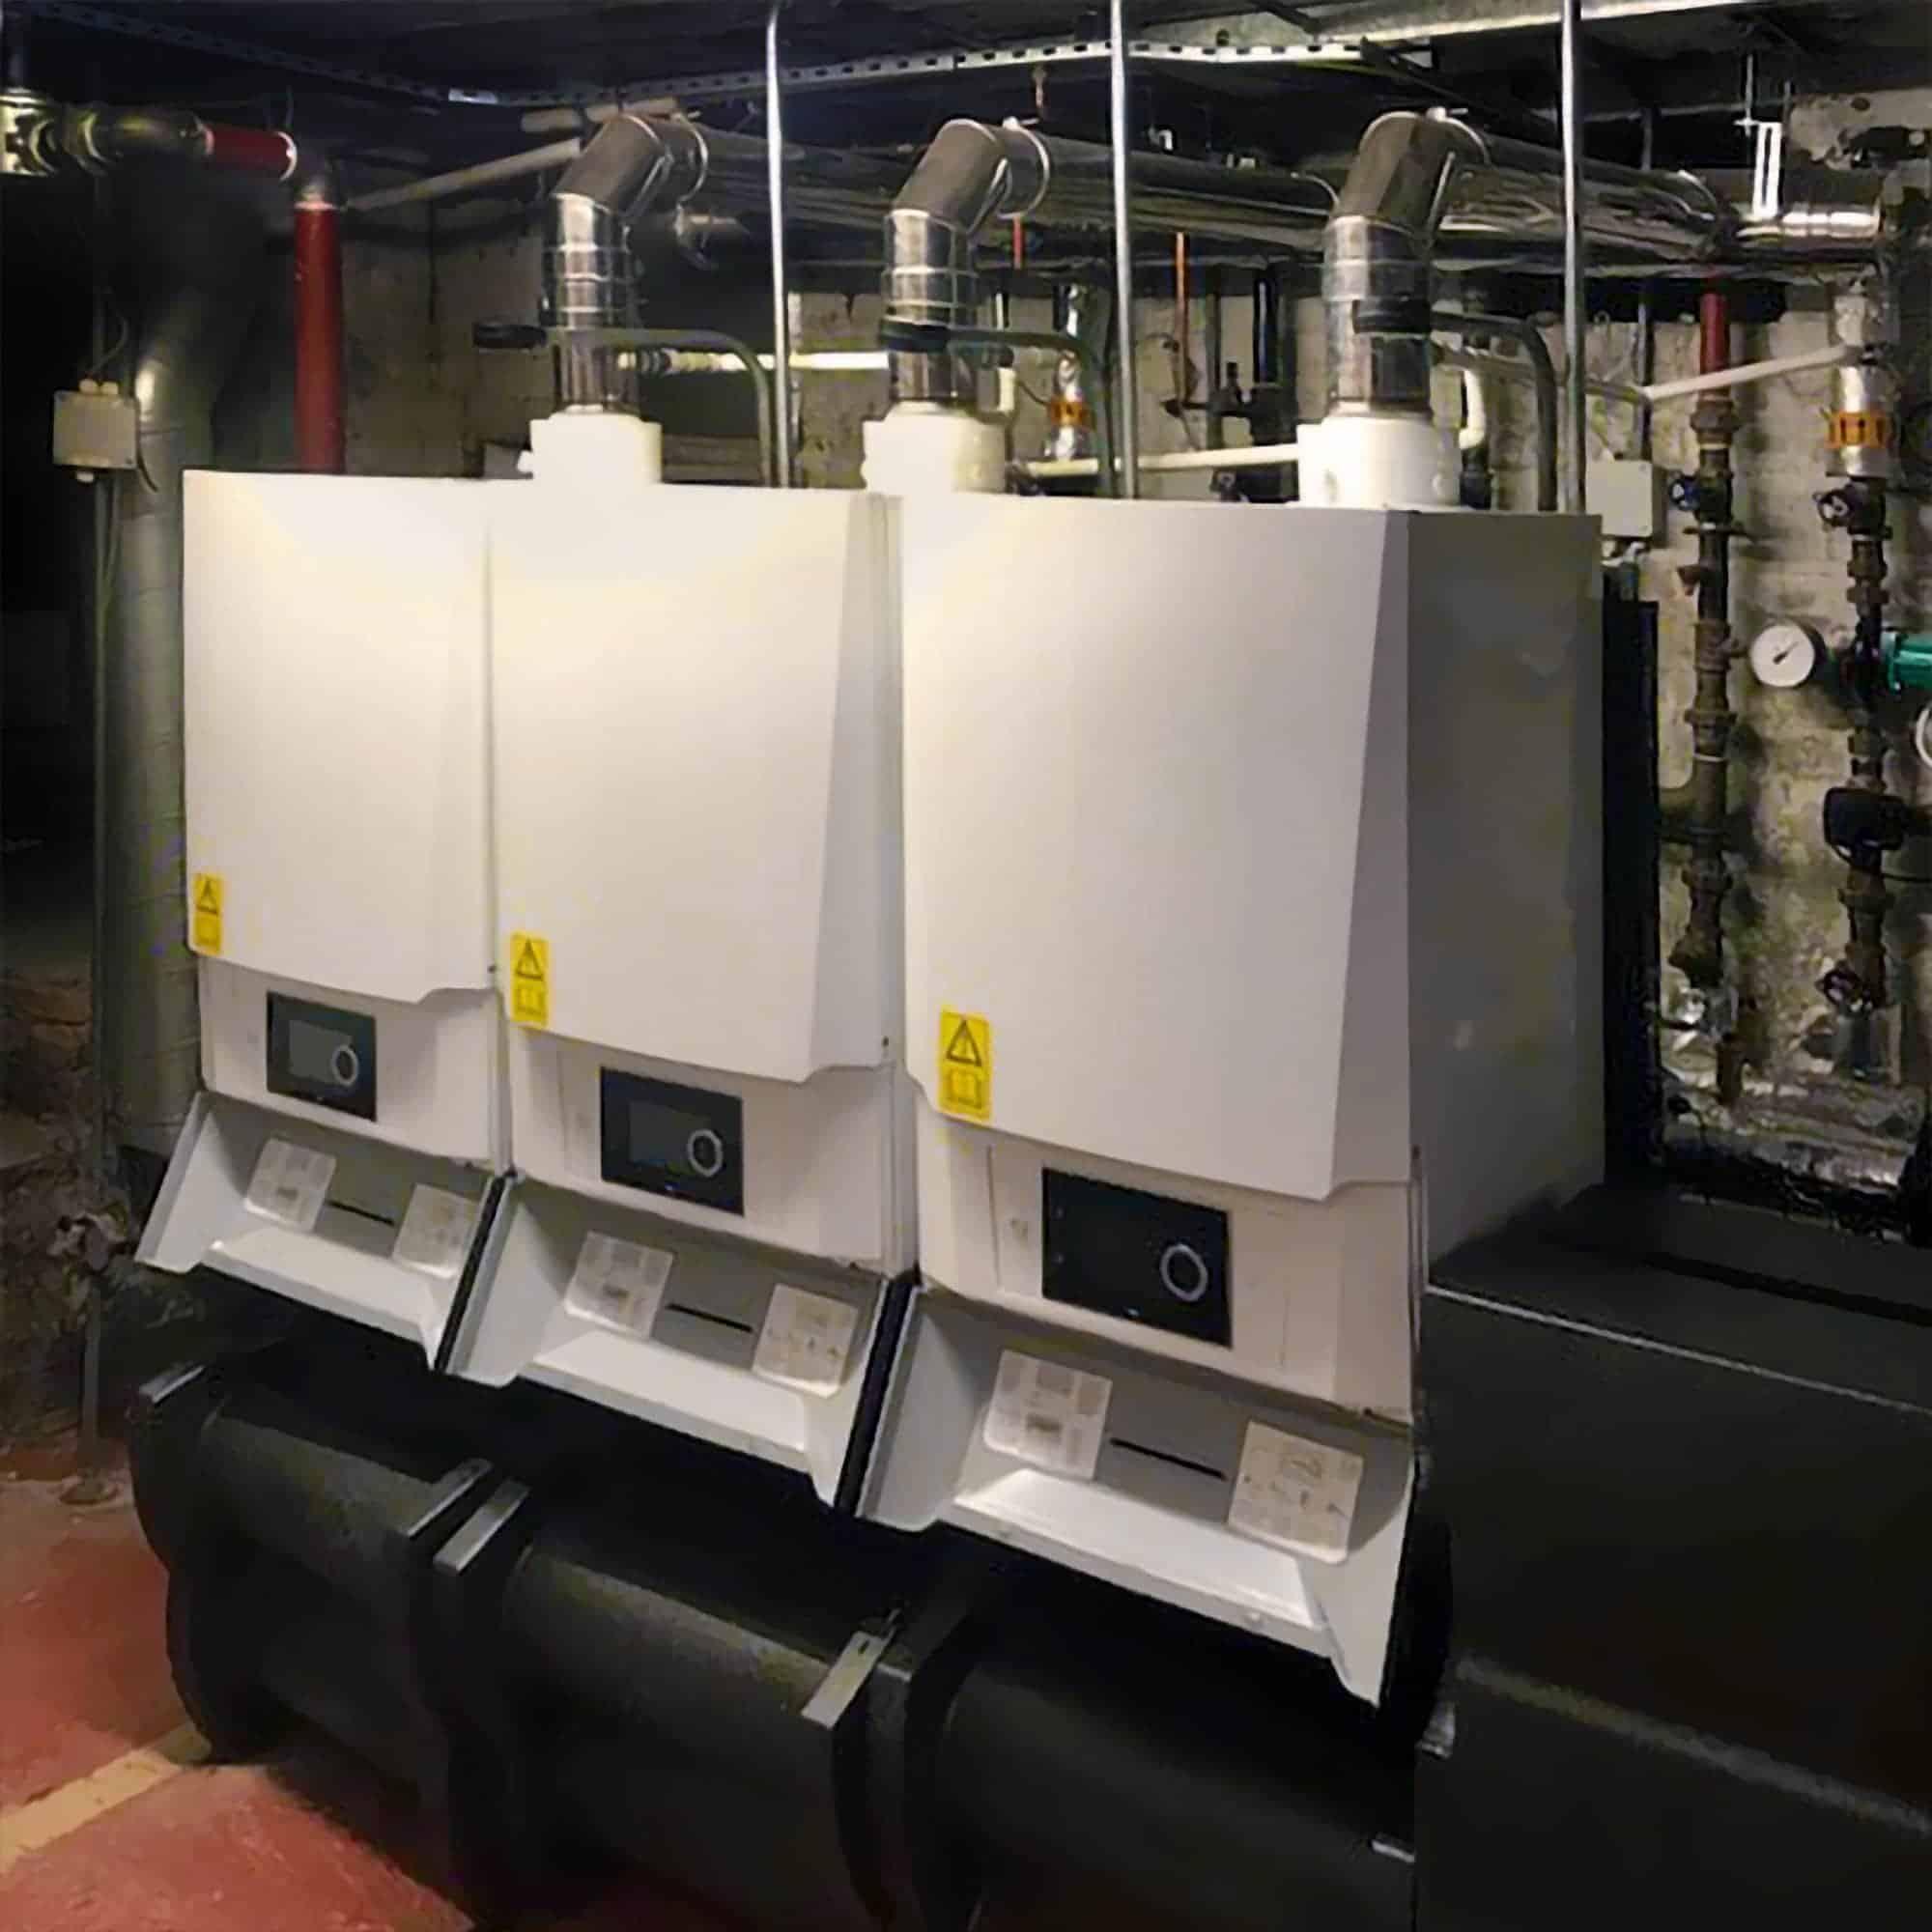 New replacement boilers